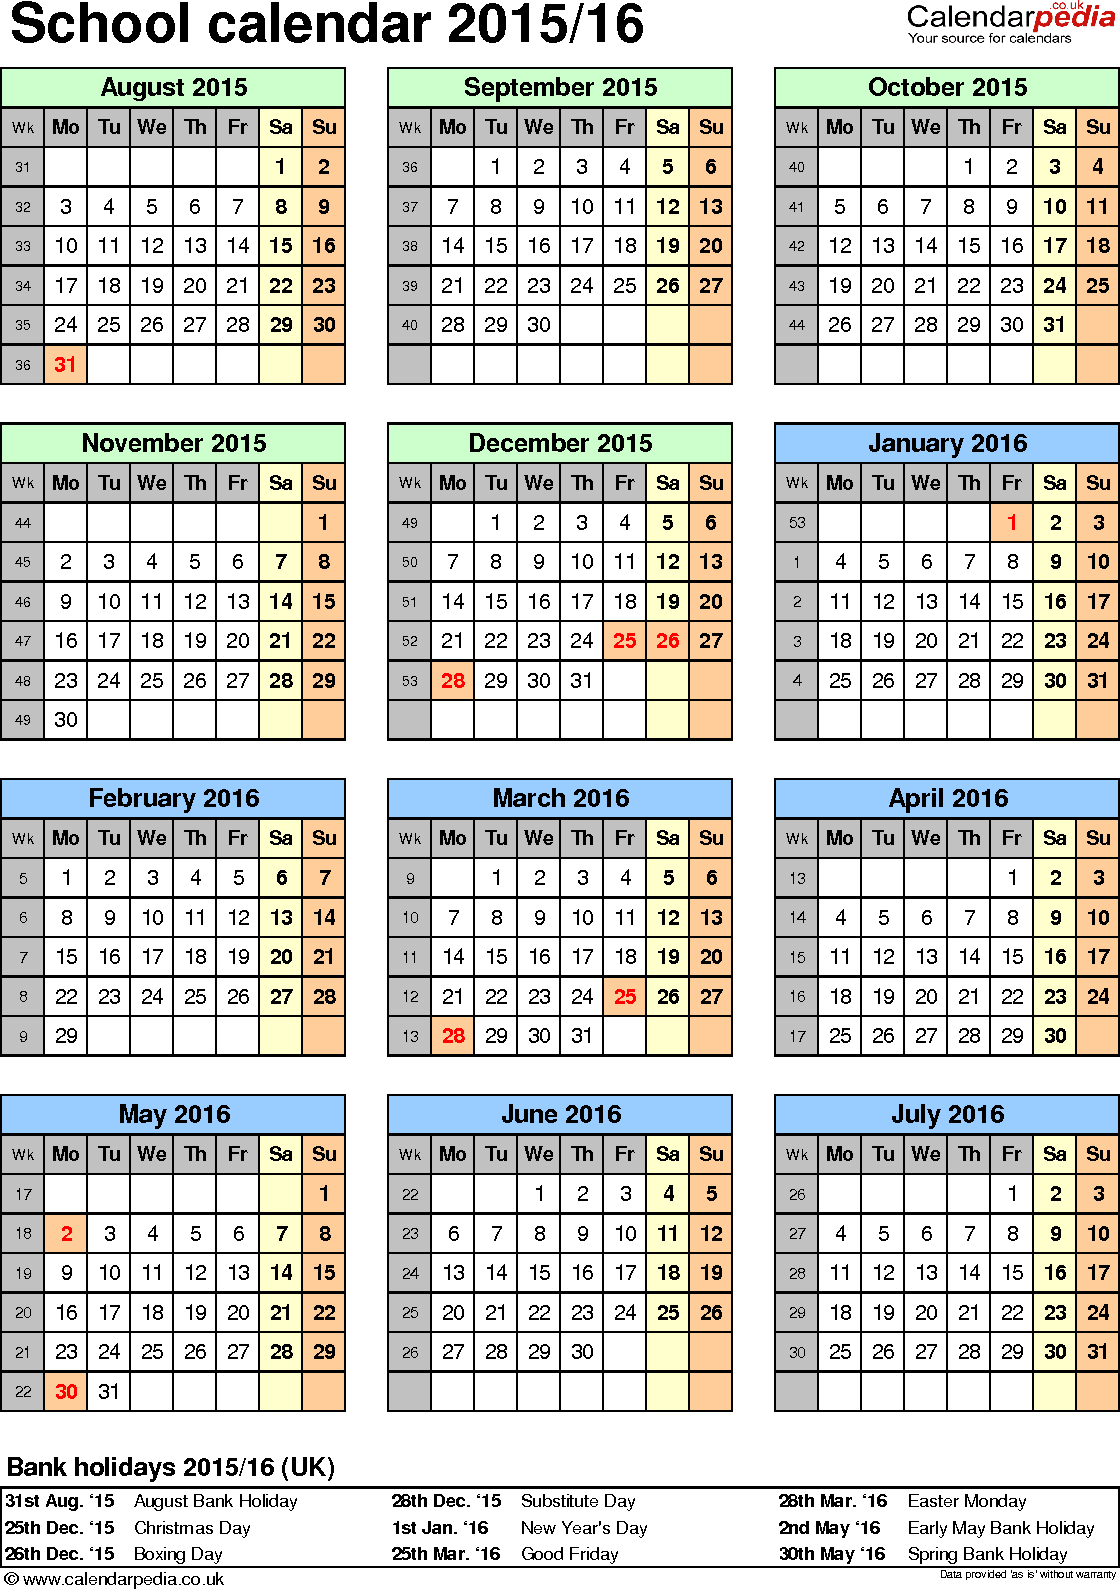 Download Template 6: School year calendars 2015/16 for Microsoft Word, portrait orientation, one A4 page